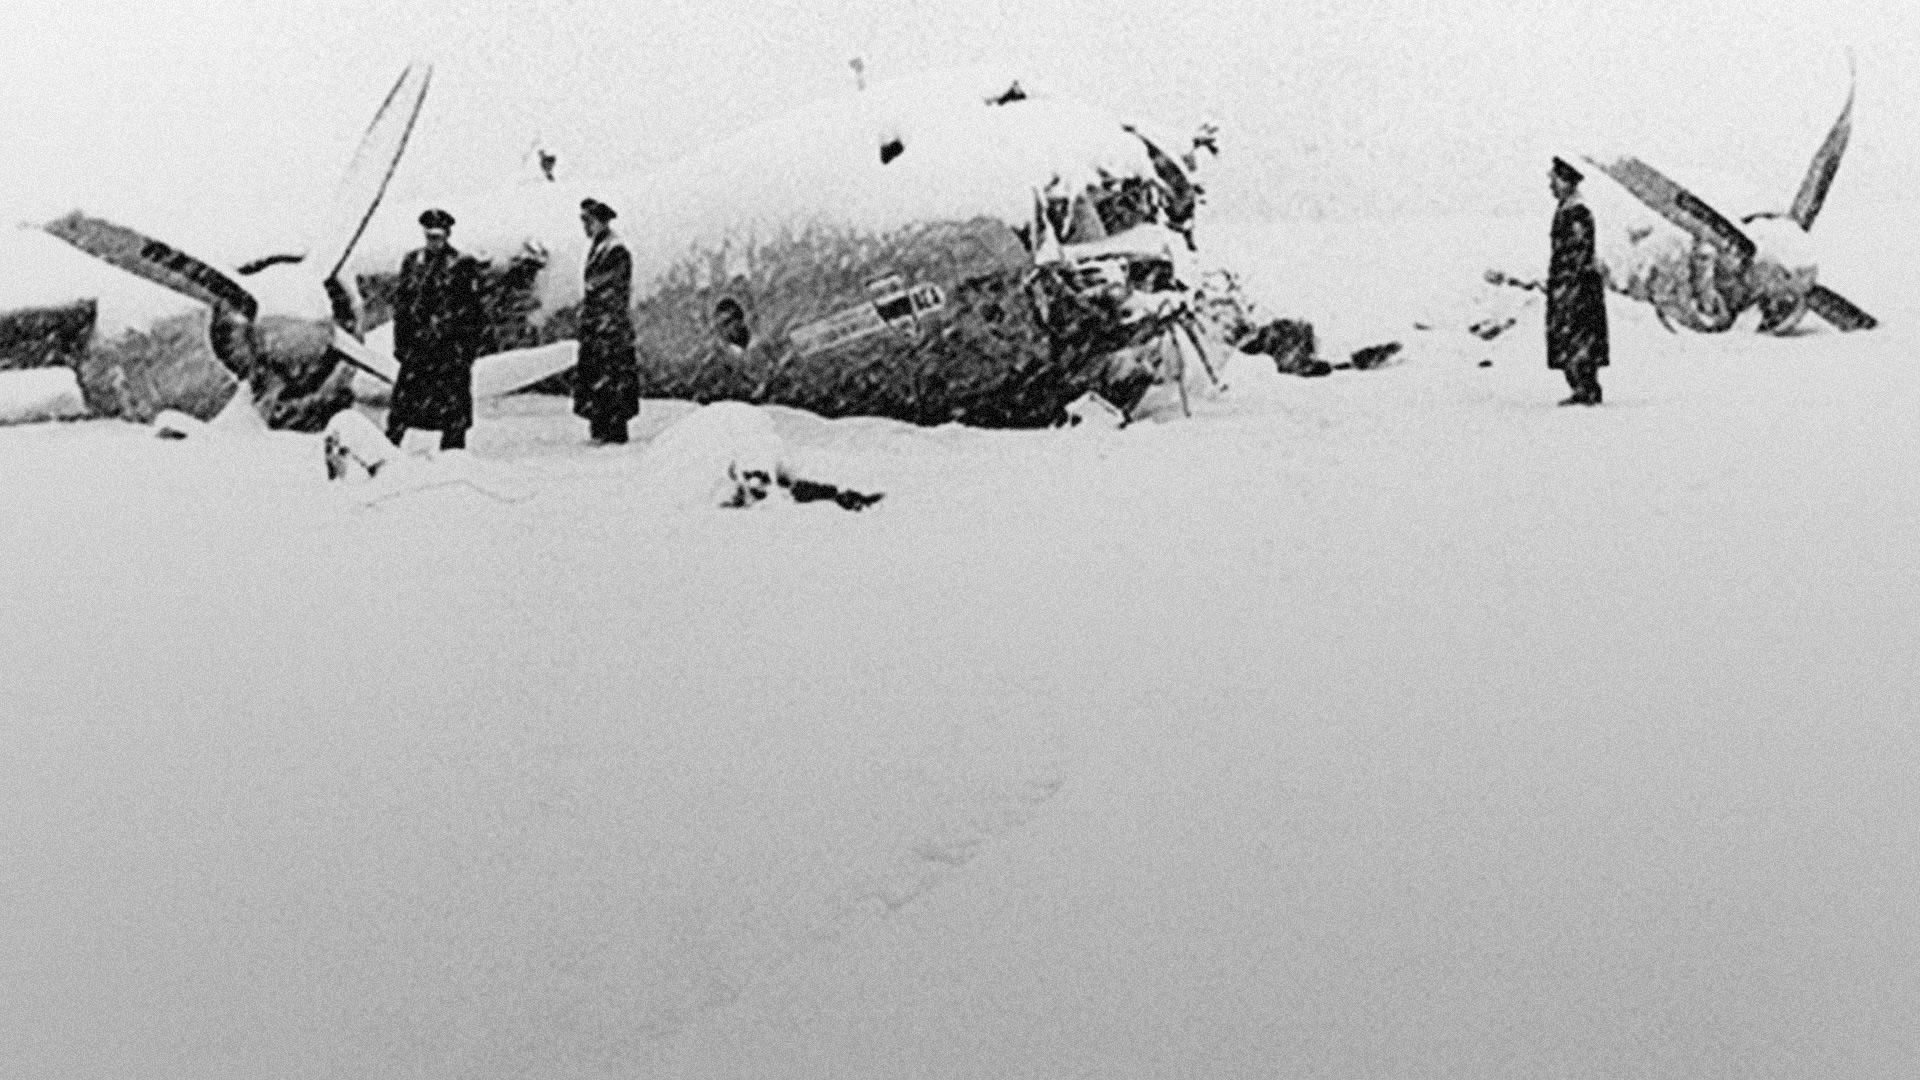 Officials survey the wreckage of Manchester United's plane after the Munich Air Disaster of February 1958.